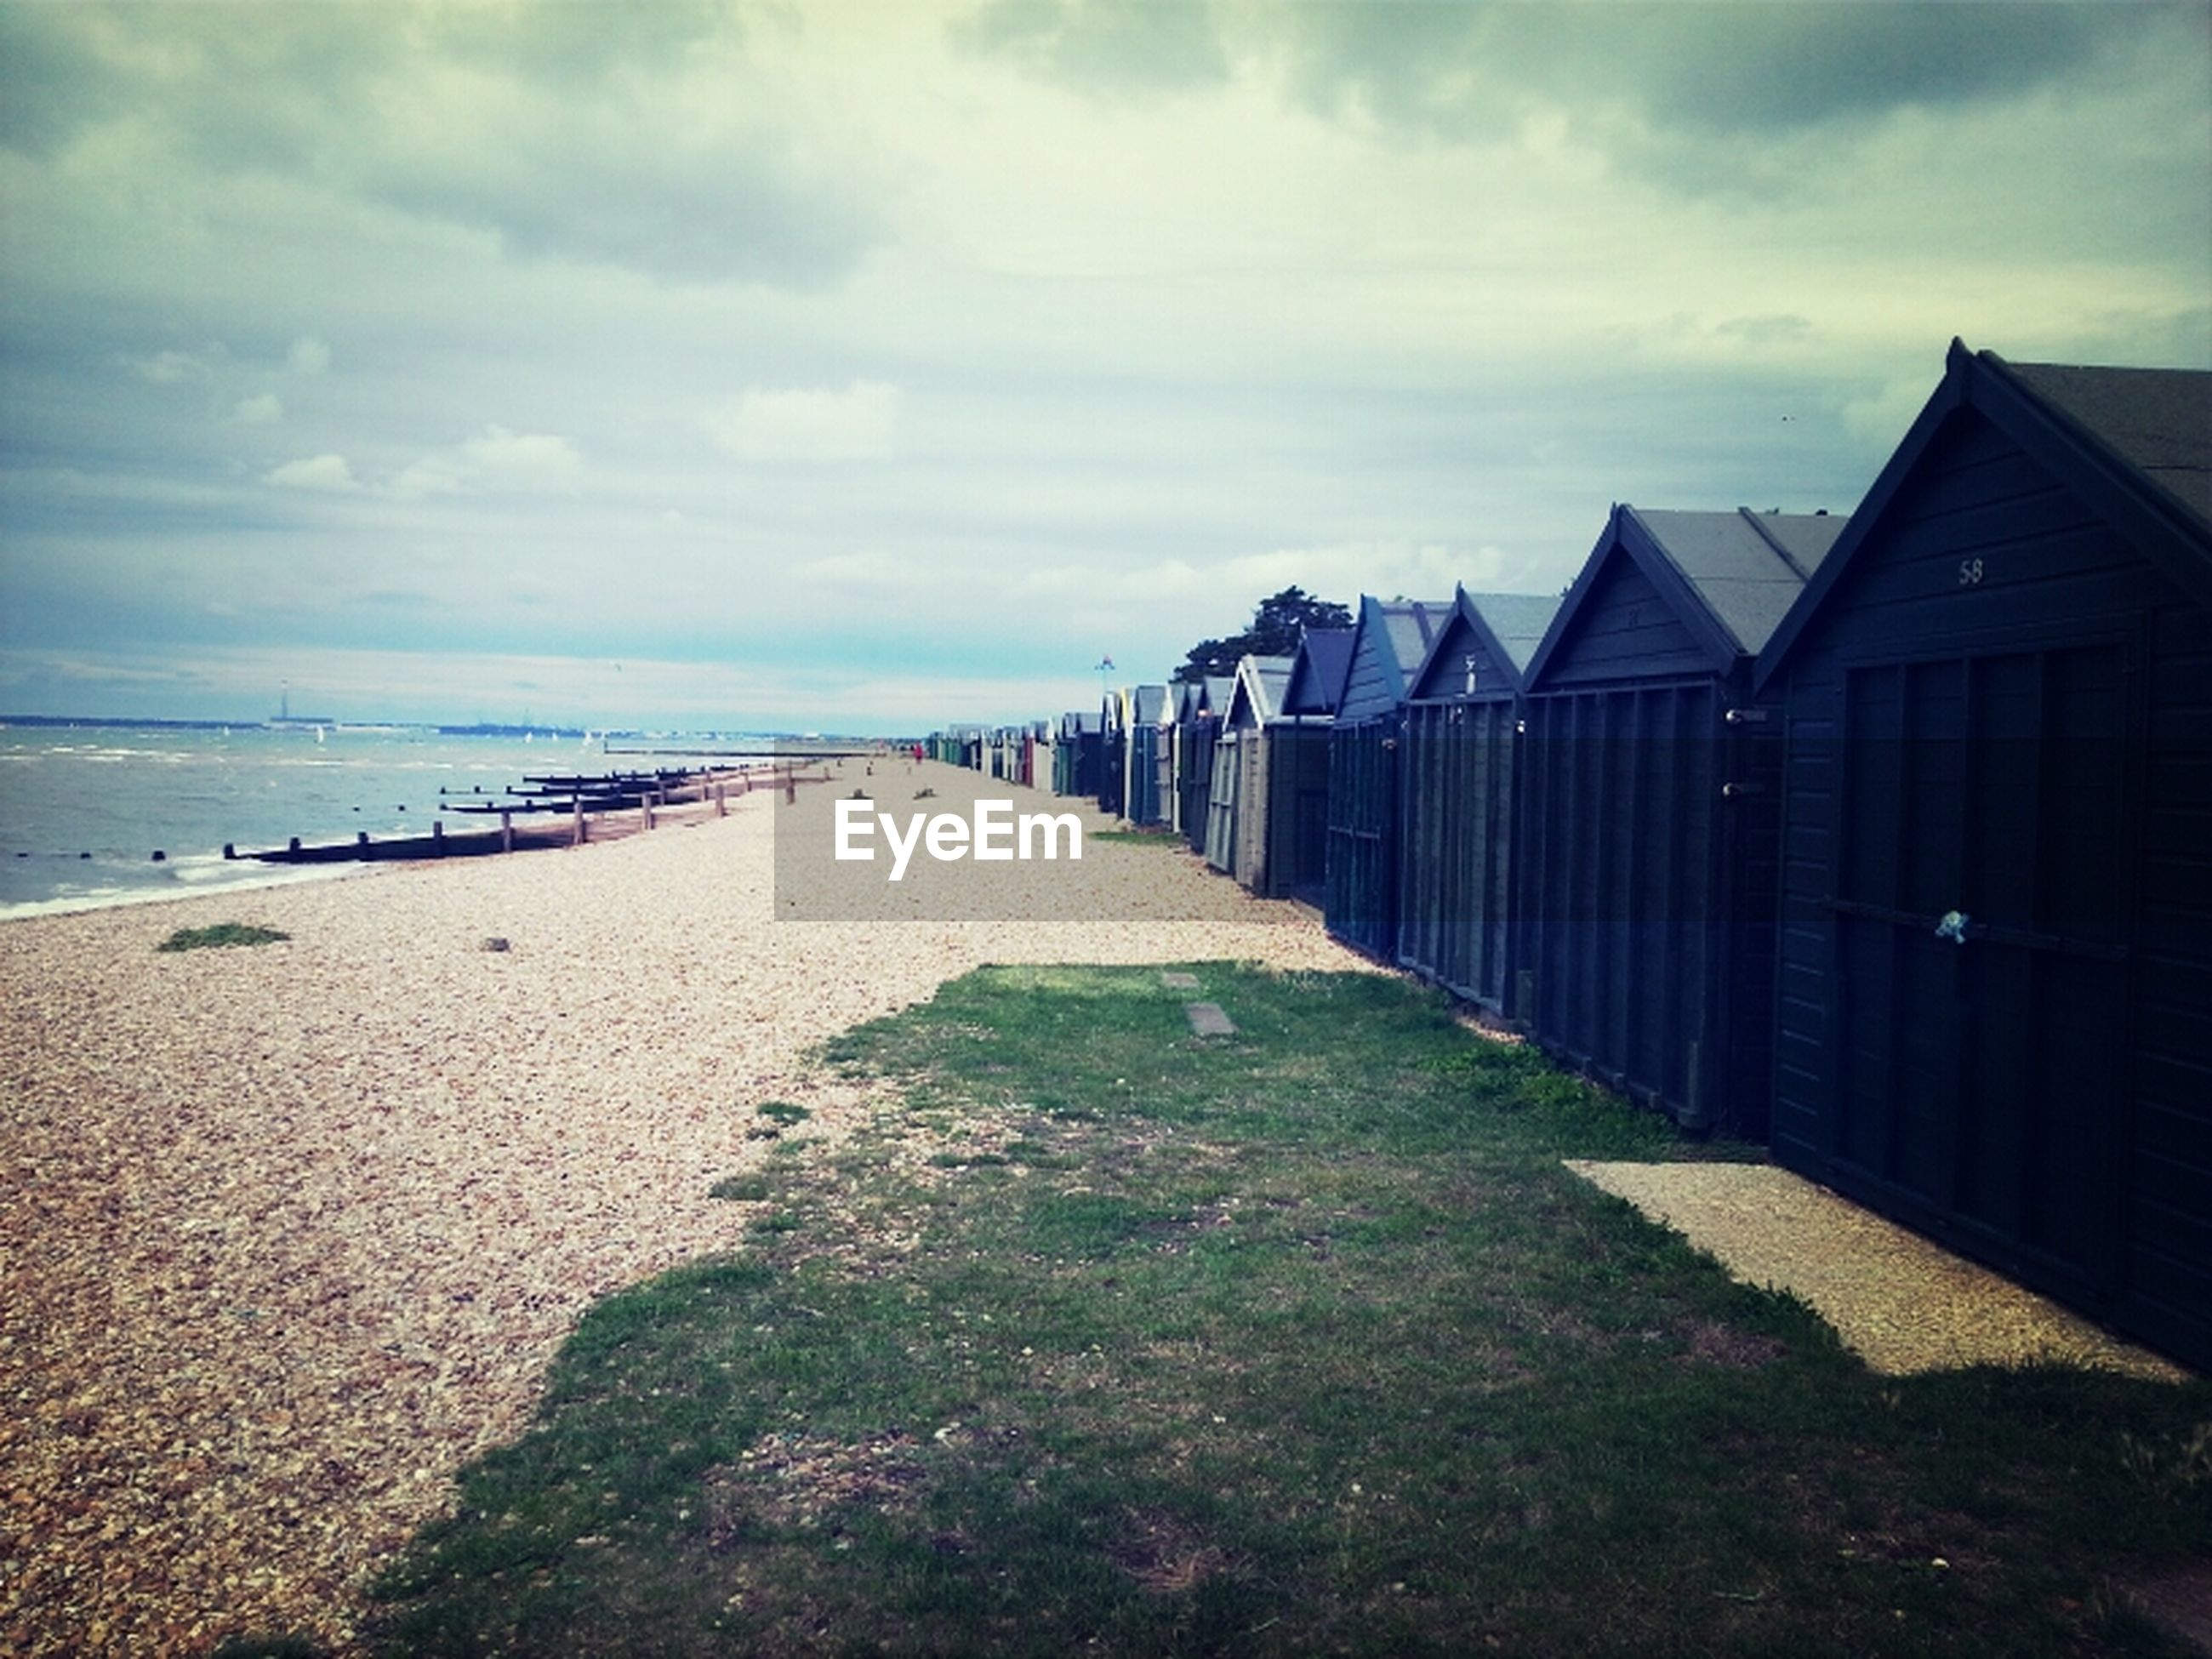 sea, beach, sky, water, horizon over water, sand, shore, cloud - sky, tranquil scene, built structure, tranquility, scenics, cloud, architecture, beauty in nature, cloudy, nature, building exterior, incidental people, the way forward